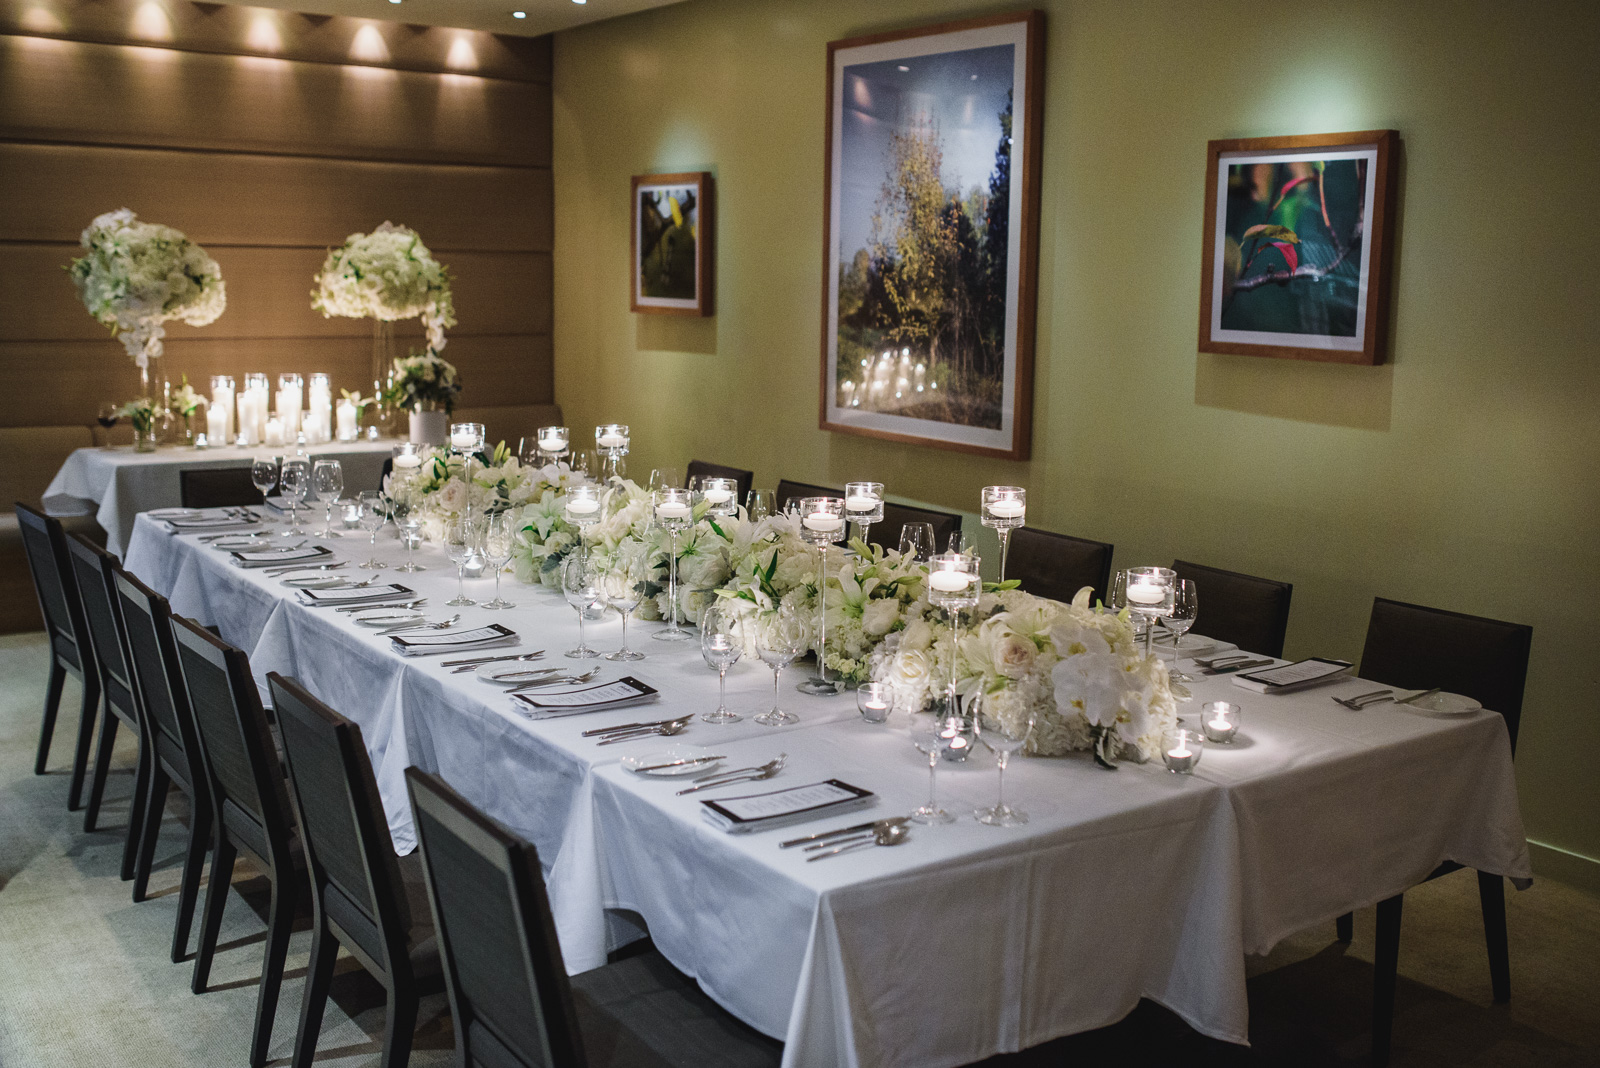 wedding reception at the Pear Tree Restaurant in Burnaby BC - Vancouver Island Wedding Photographer